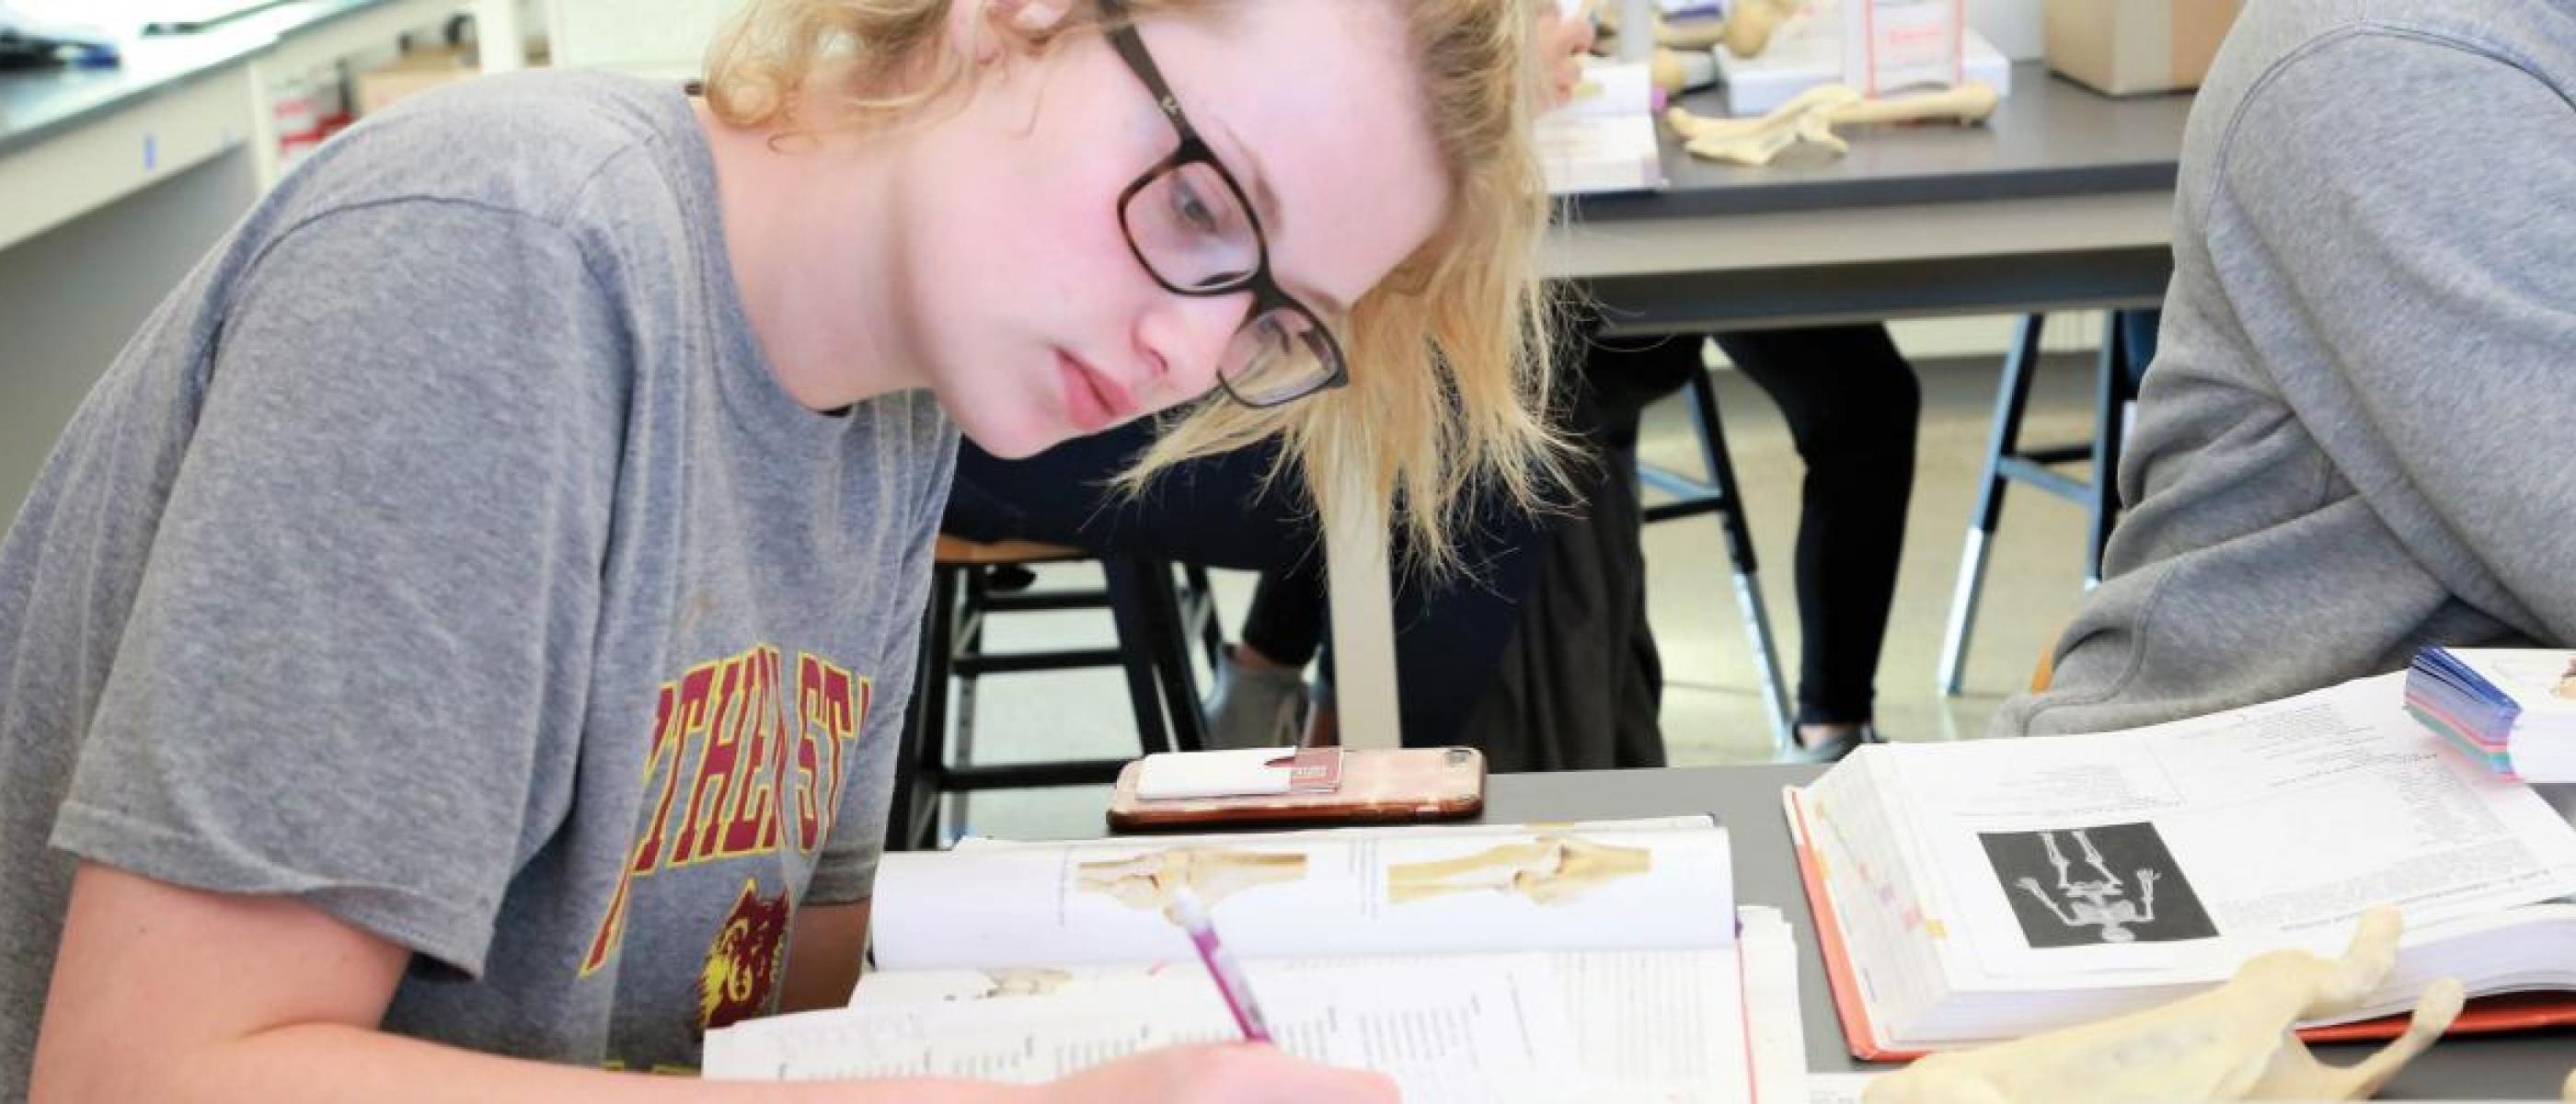 Female student studying from textbook